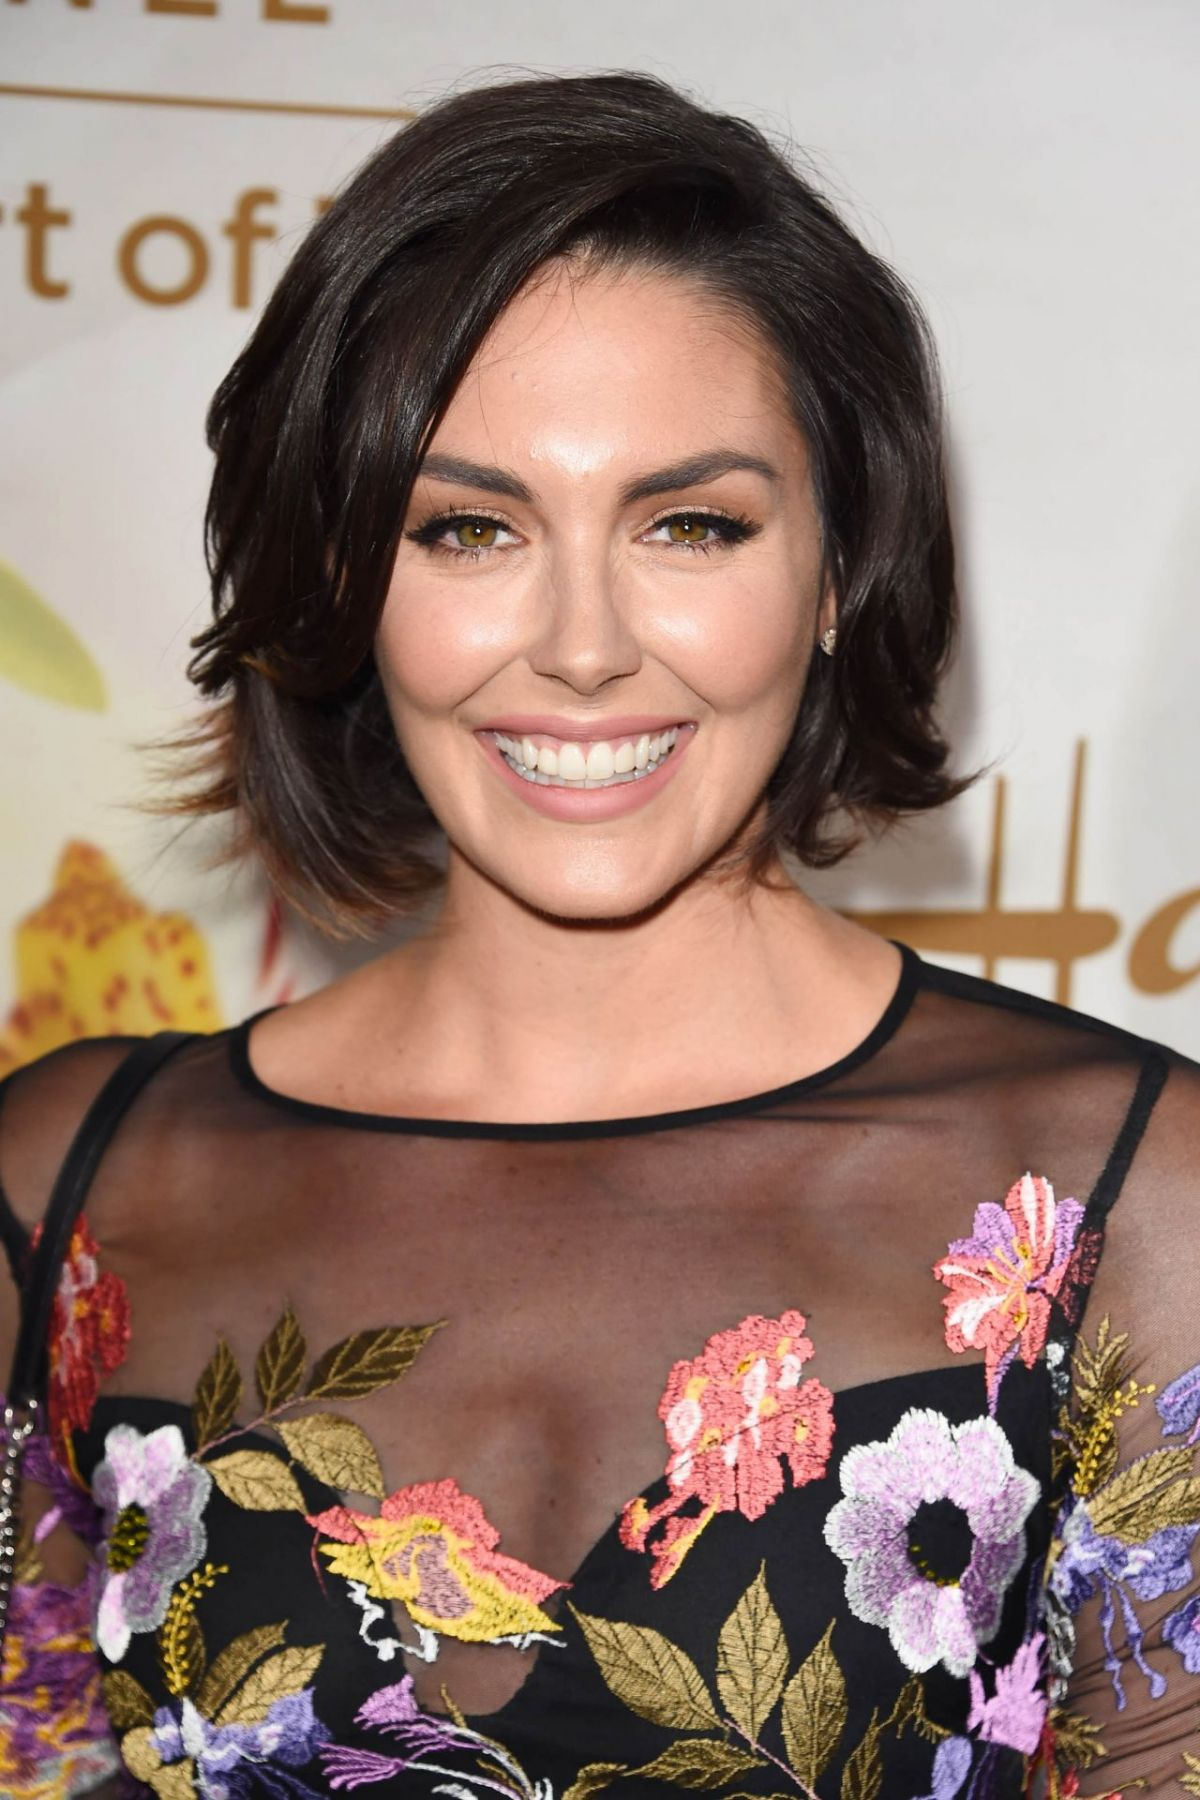 TAYLOR COLE at Hallmark Event at TCA Summer Tour in Los Angeles 07/27/2017